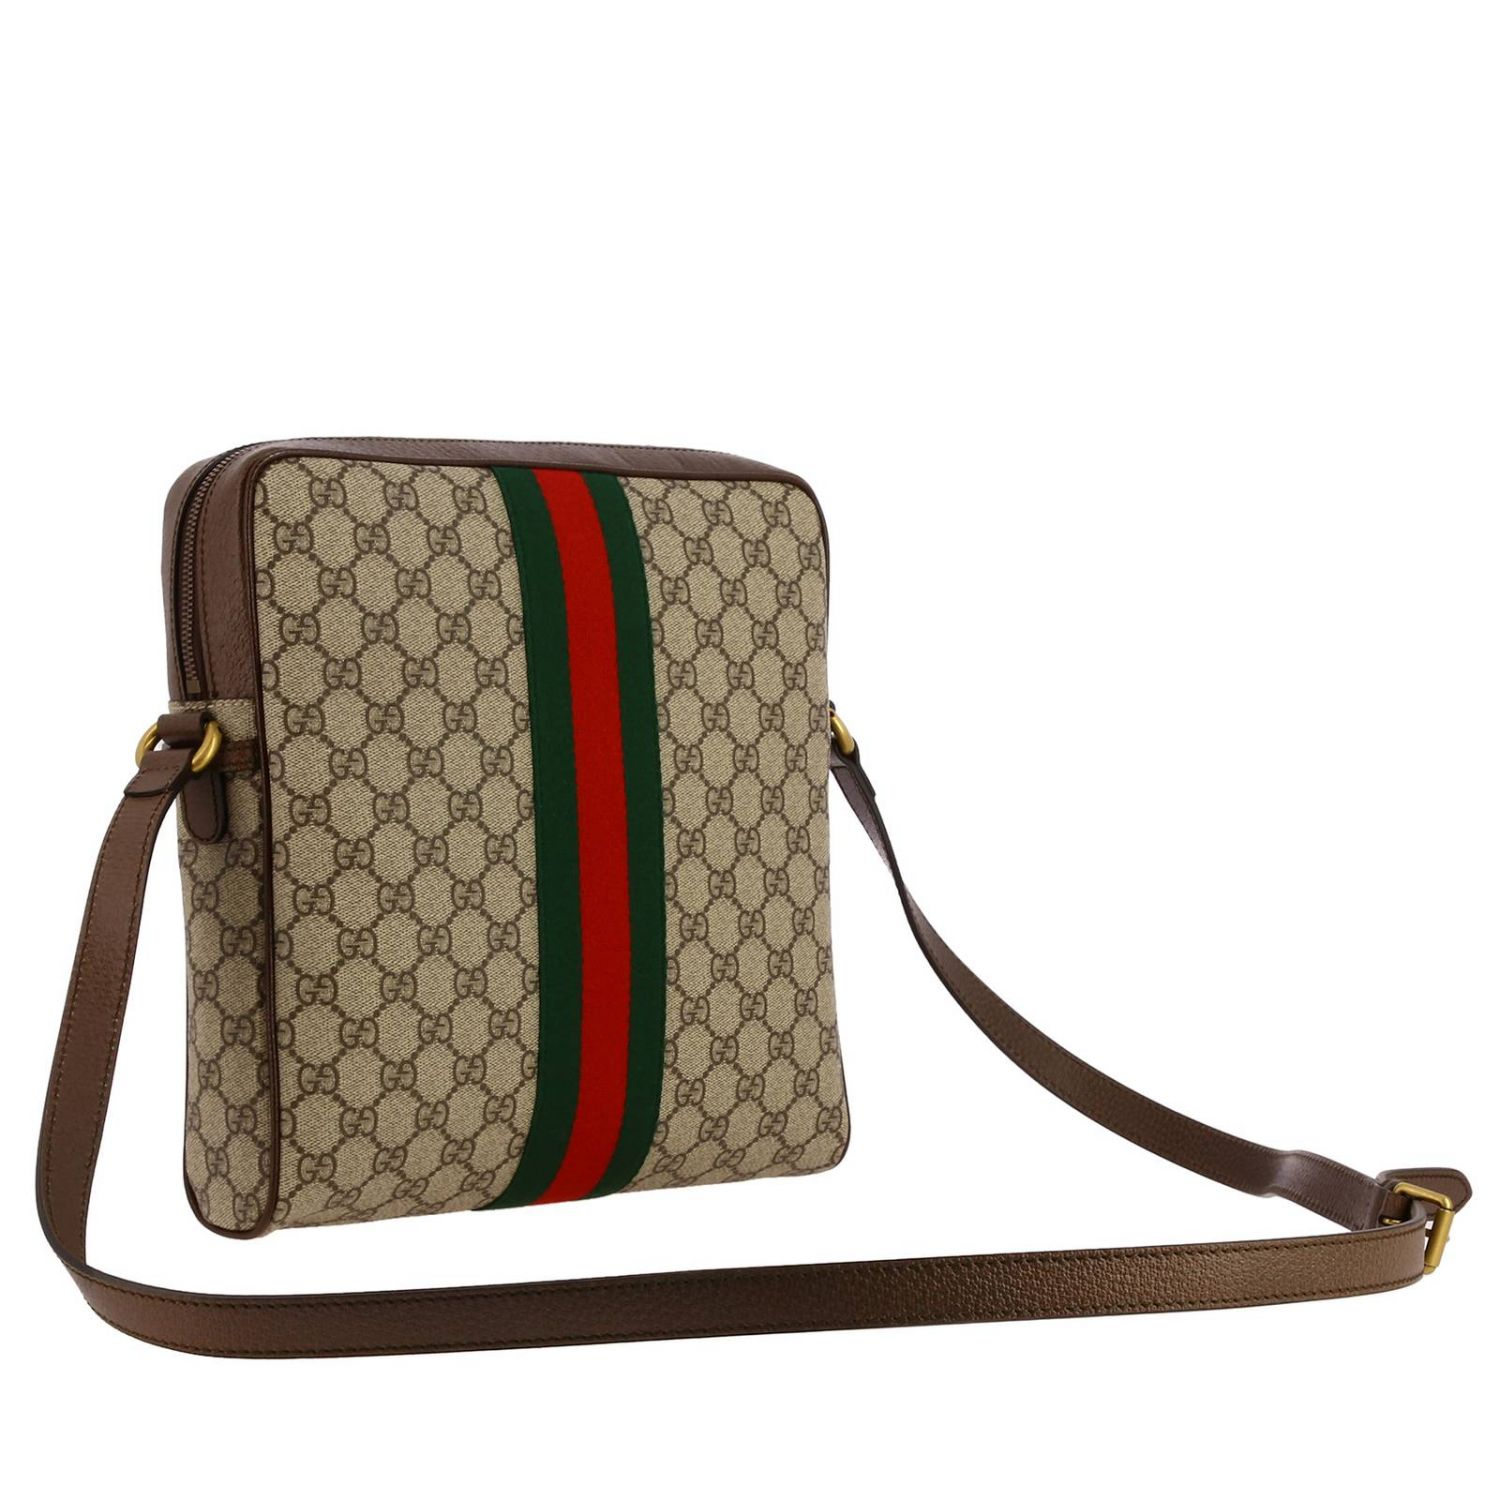 Ophidia shoulder bag in GG Supreme Gucci leather with Web band beige 3